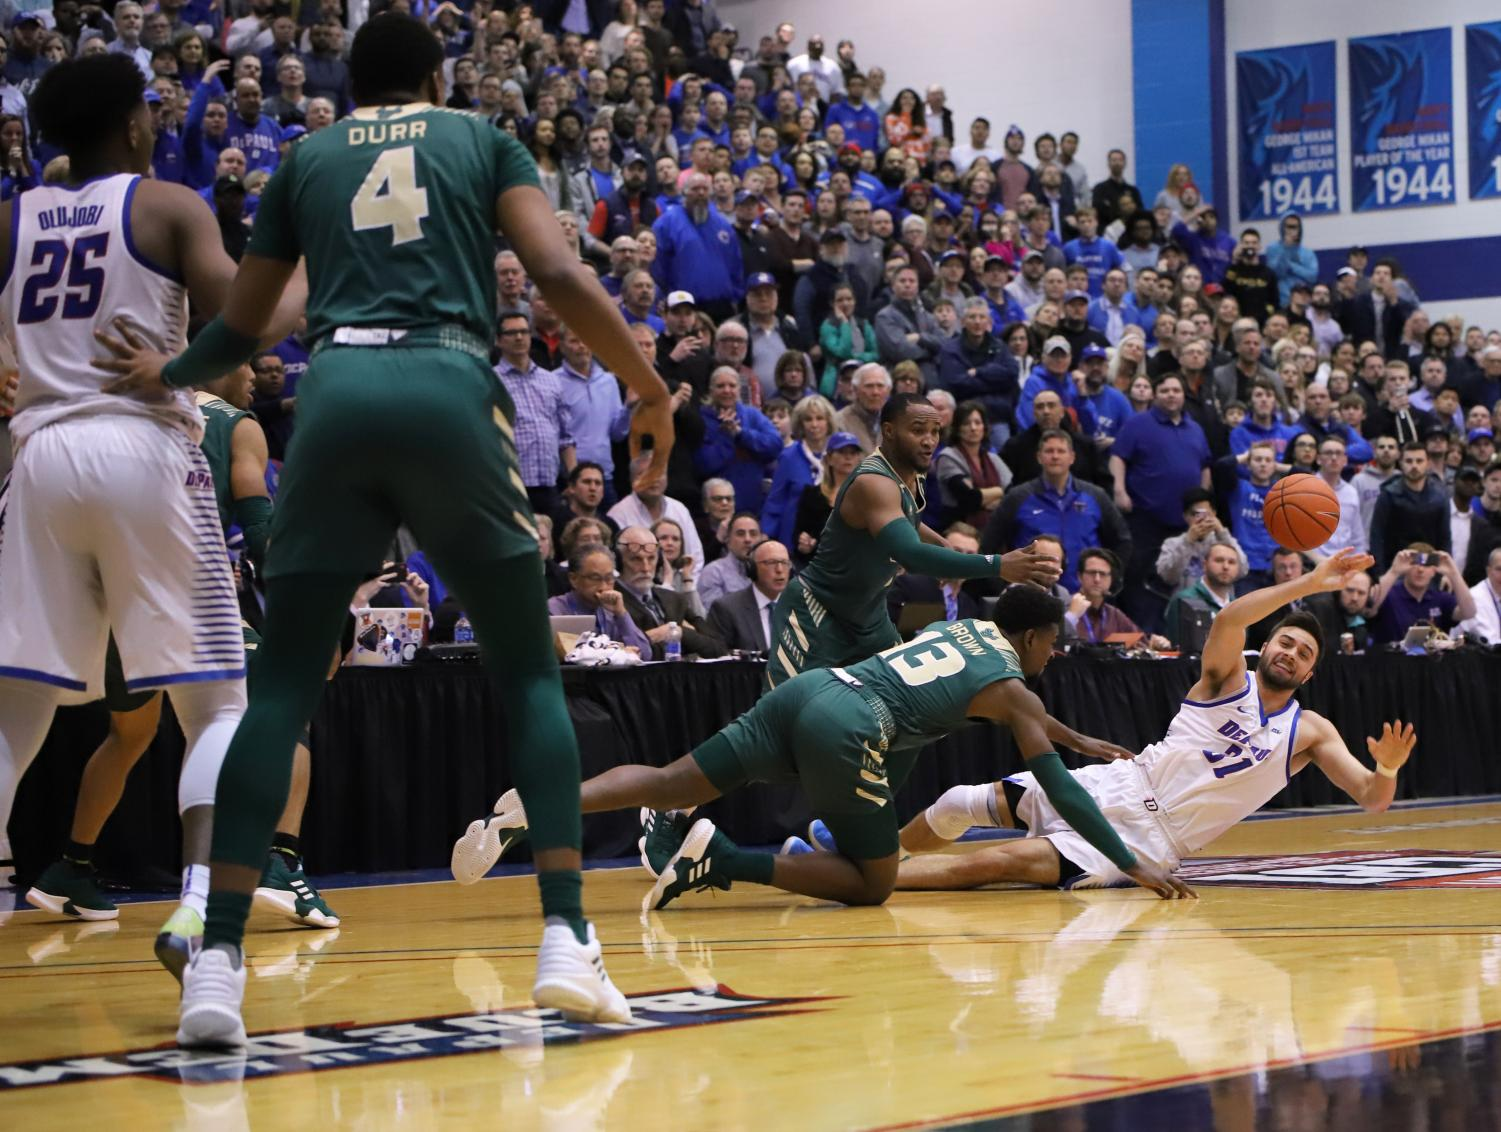 DePaul+senior+guard+Max+Strus+tries+to+save+the+ball+late+in+regulation+after+having+it+knocked+away+by+USF+defenders+Laquincy+Rideau+and+Justin+Brown.+The+Blue+Demons+and+Bulls+headed+to+overtime+tied+at+82.+Alexa+Sandler+%7C+The+DePaulia